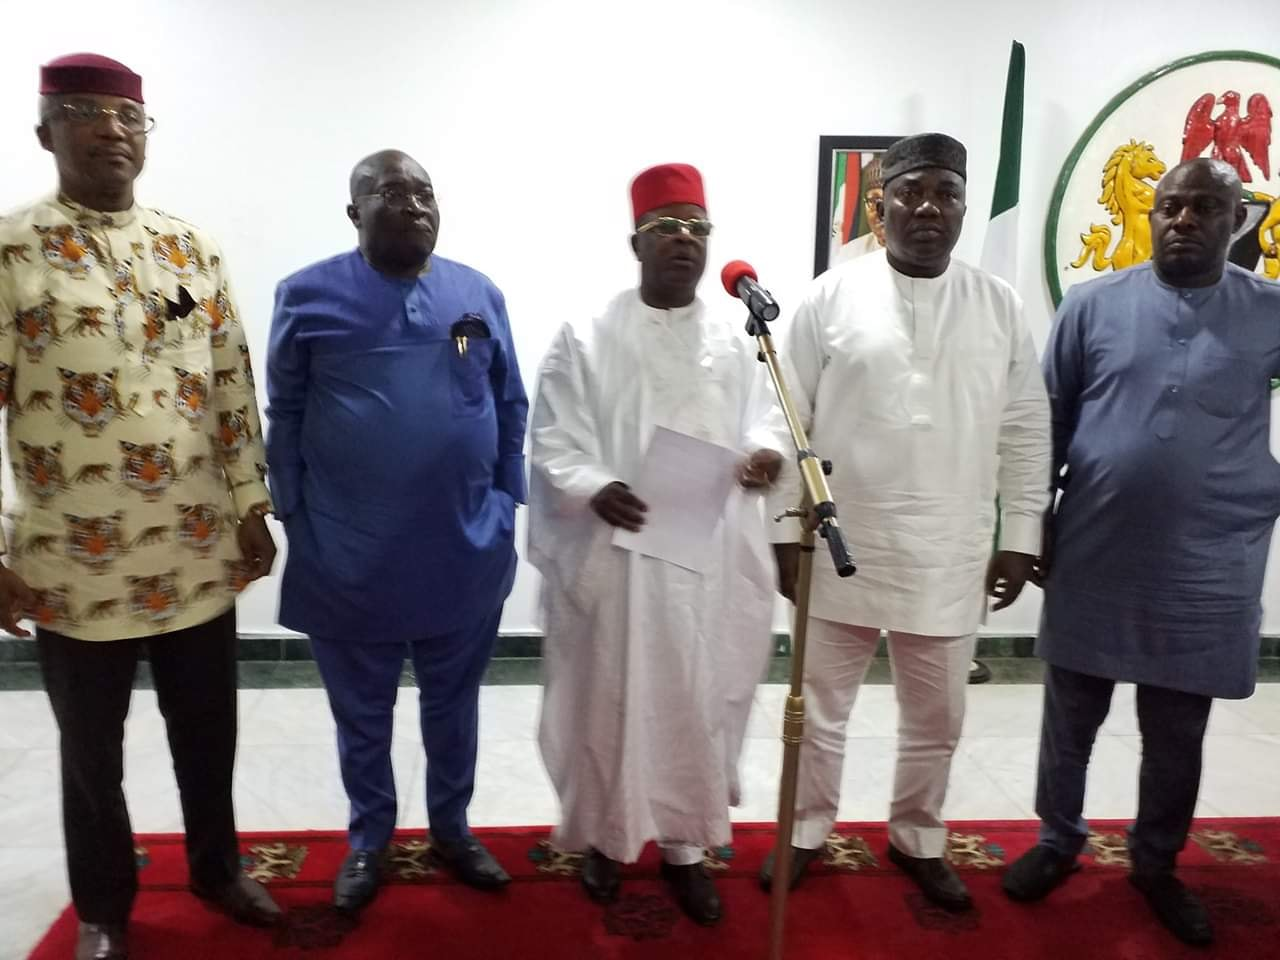 Southeast Governors to set up Zonal Security Centre - Premium Times